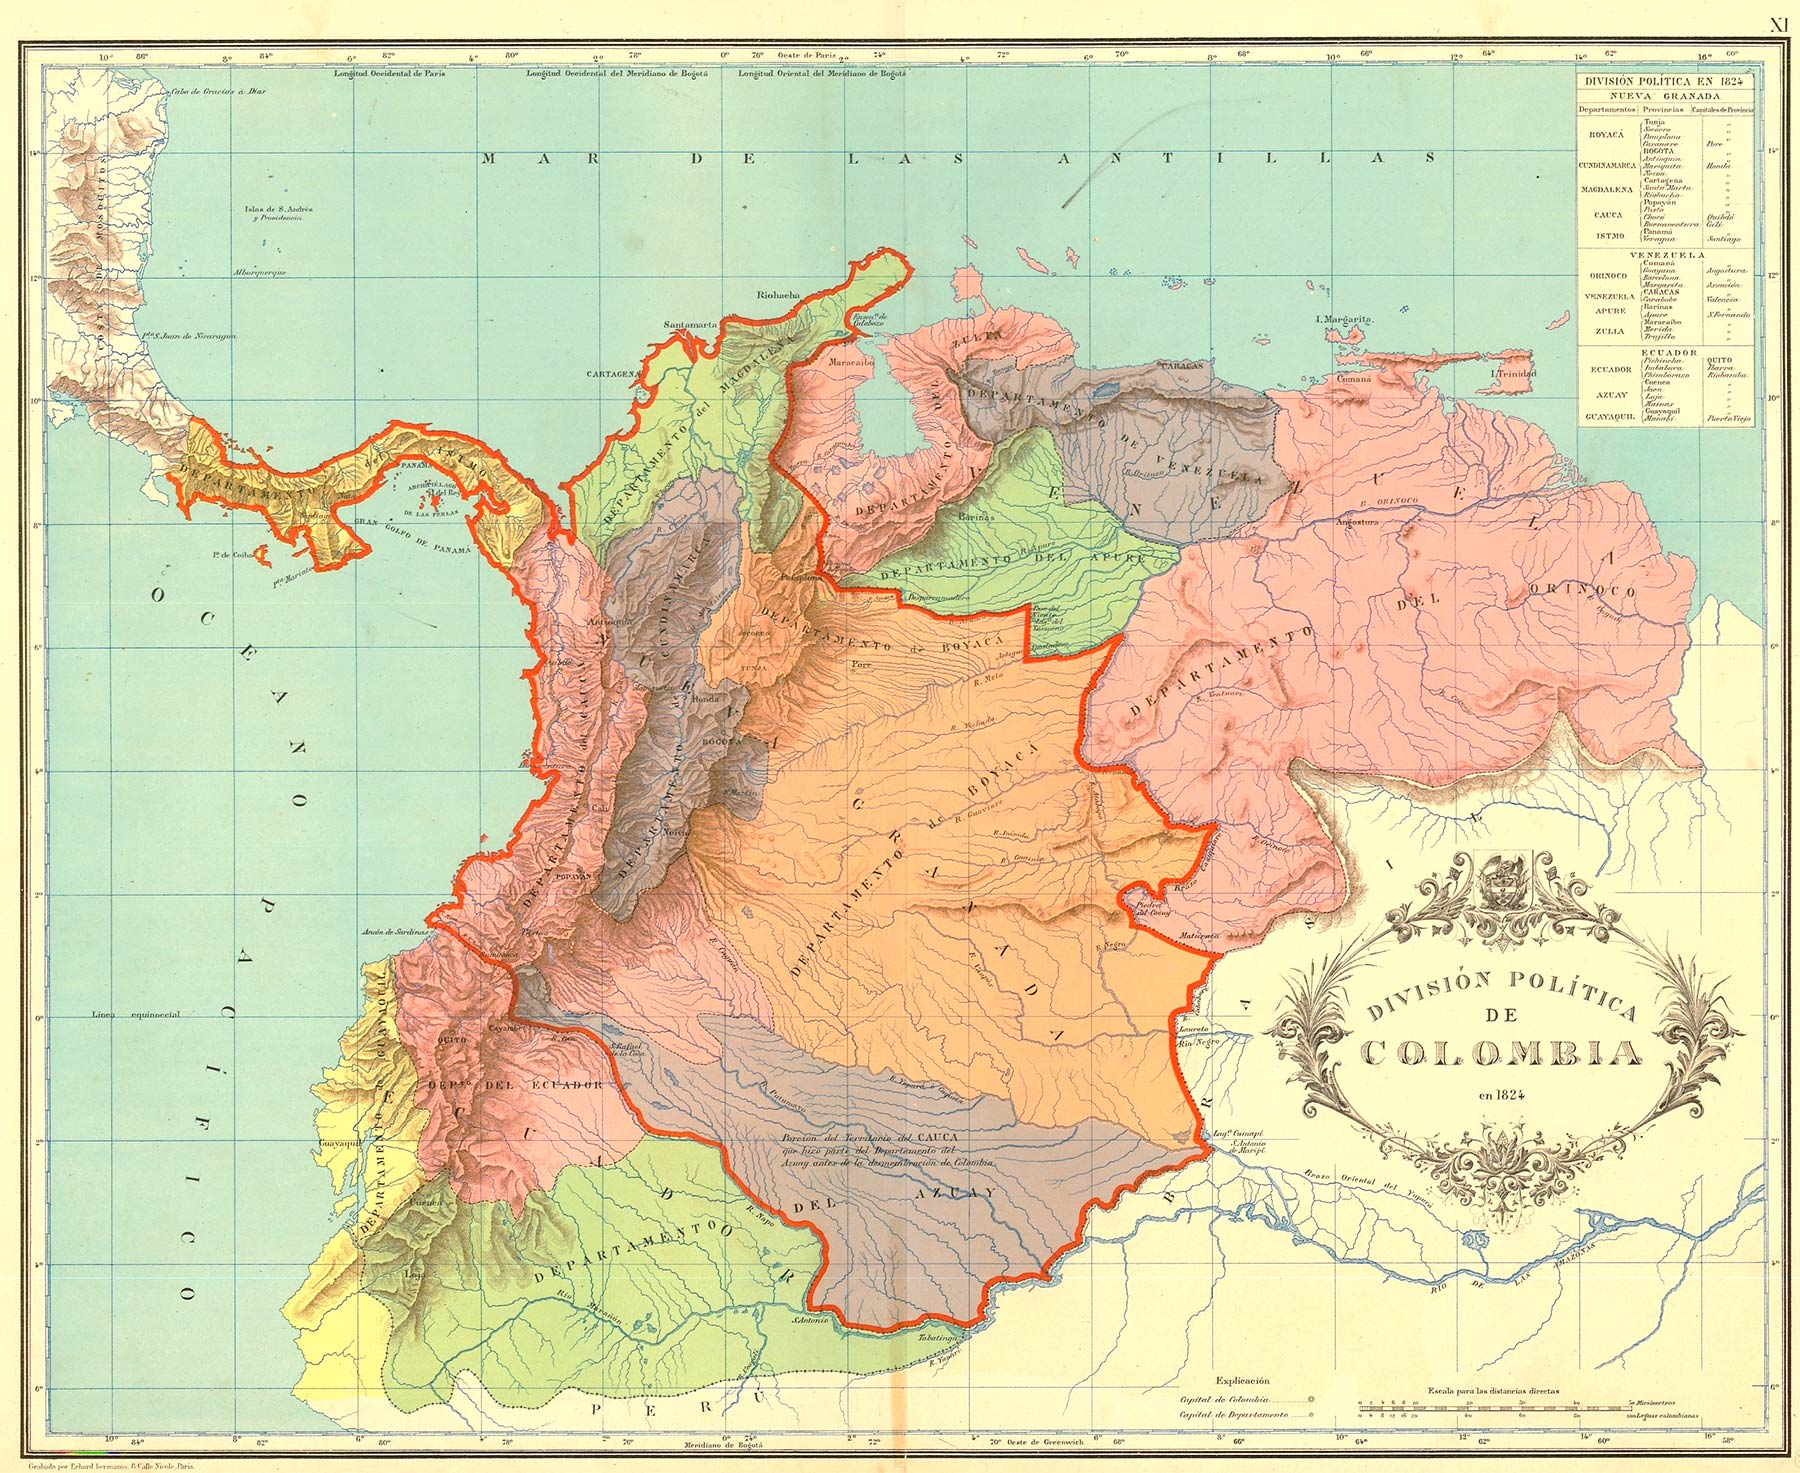 A Map Of Gran Colombia Showing The 12 Departments Created In 1824 And Territories Disputed With